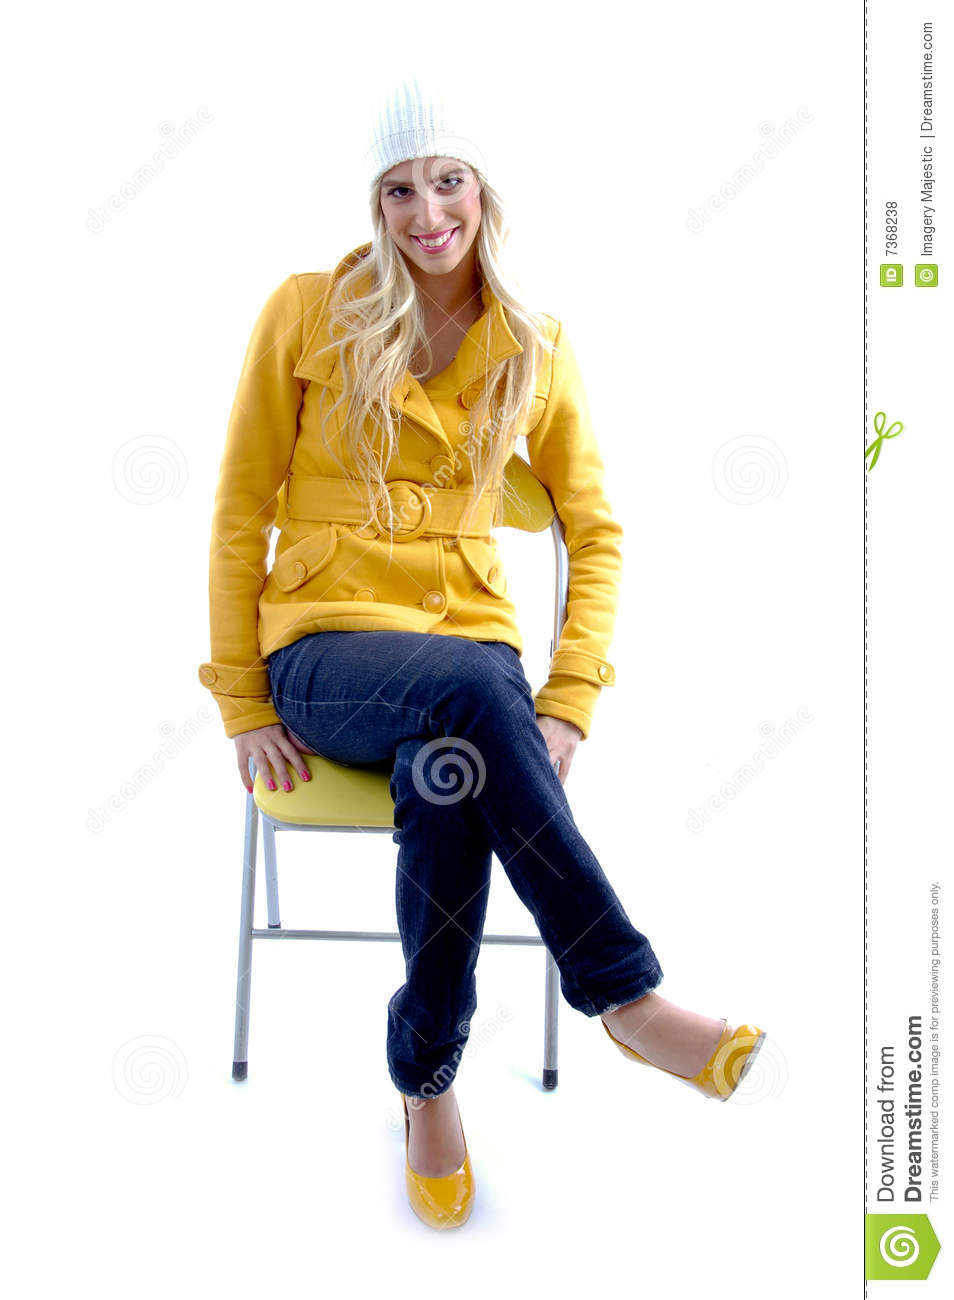 woman sitting in chair ergonomic office chairs for sale front view of on stock photo - image camera, gorgeous: 7368238